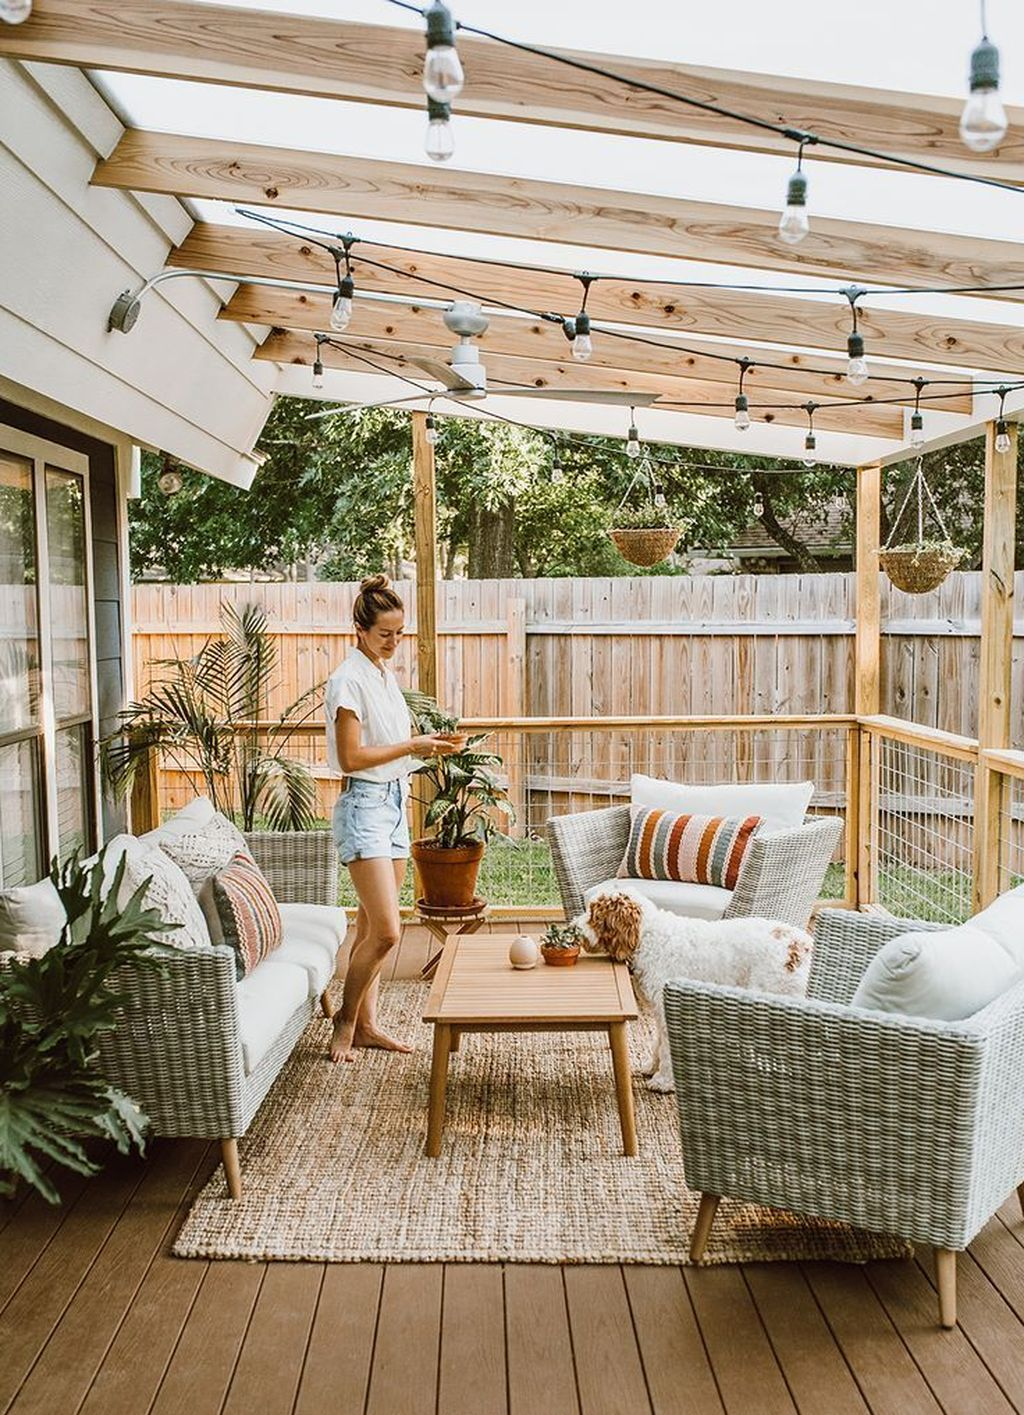 Wonderful Backyard Patio Designs Ideas Perfect For Summertime 14